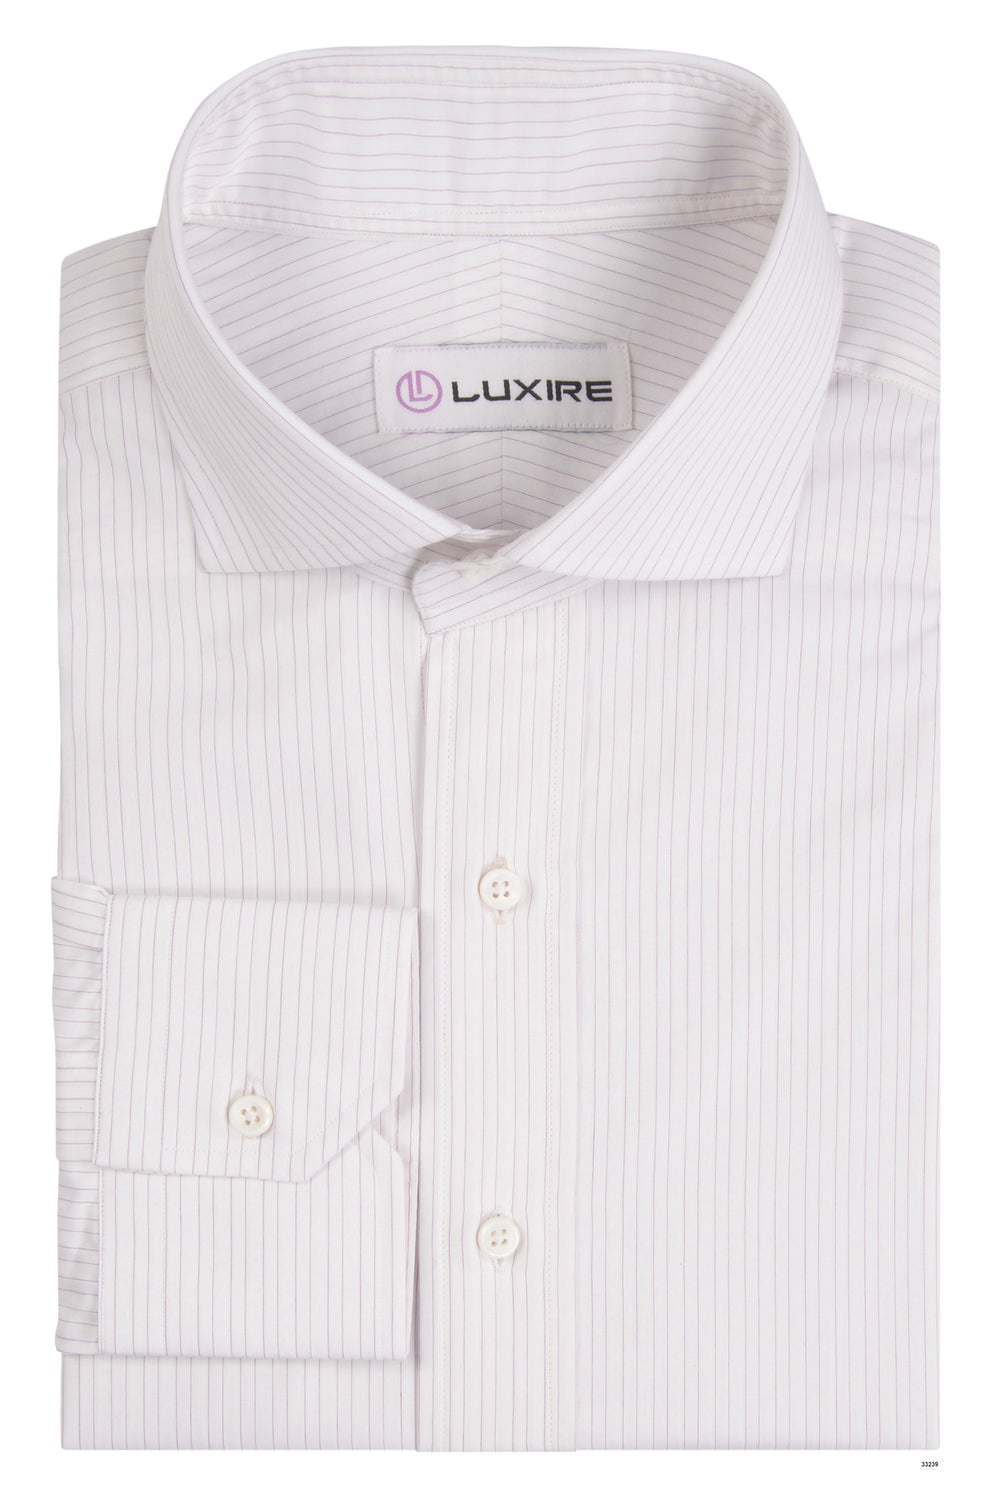 Pink Pin Stripes on White (297231277)